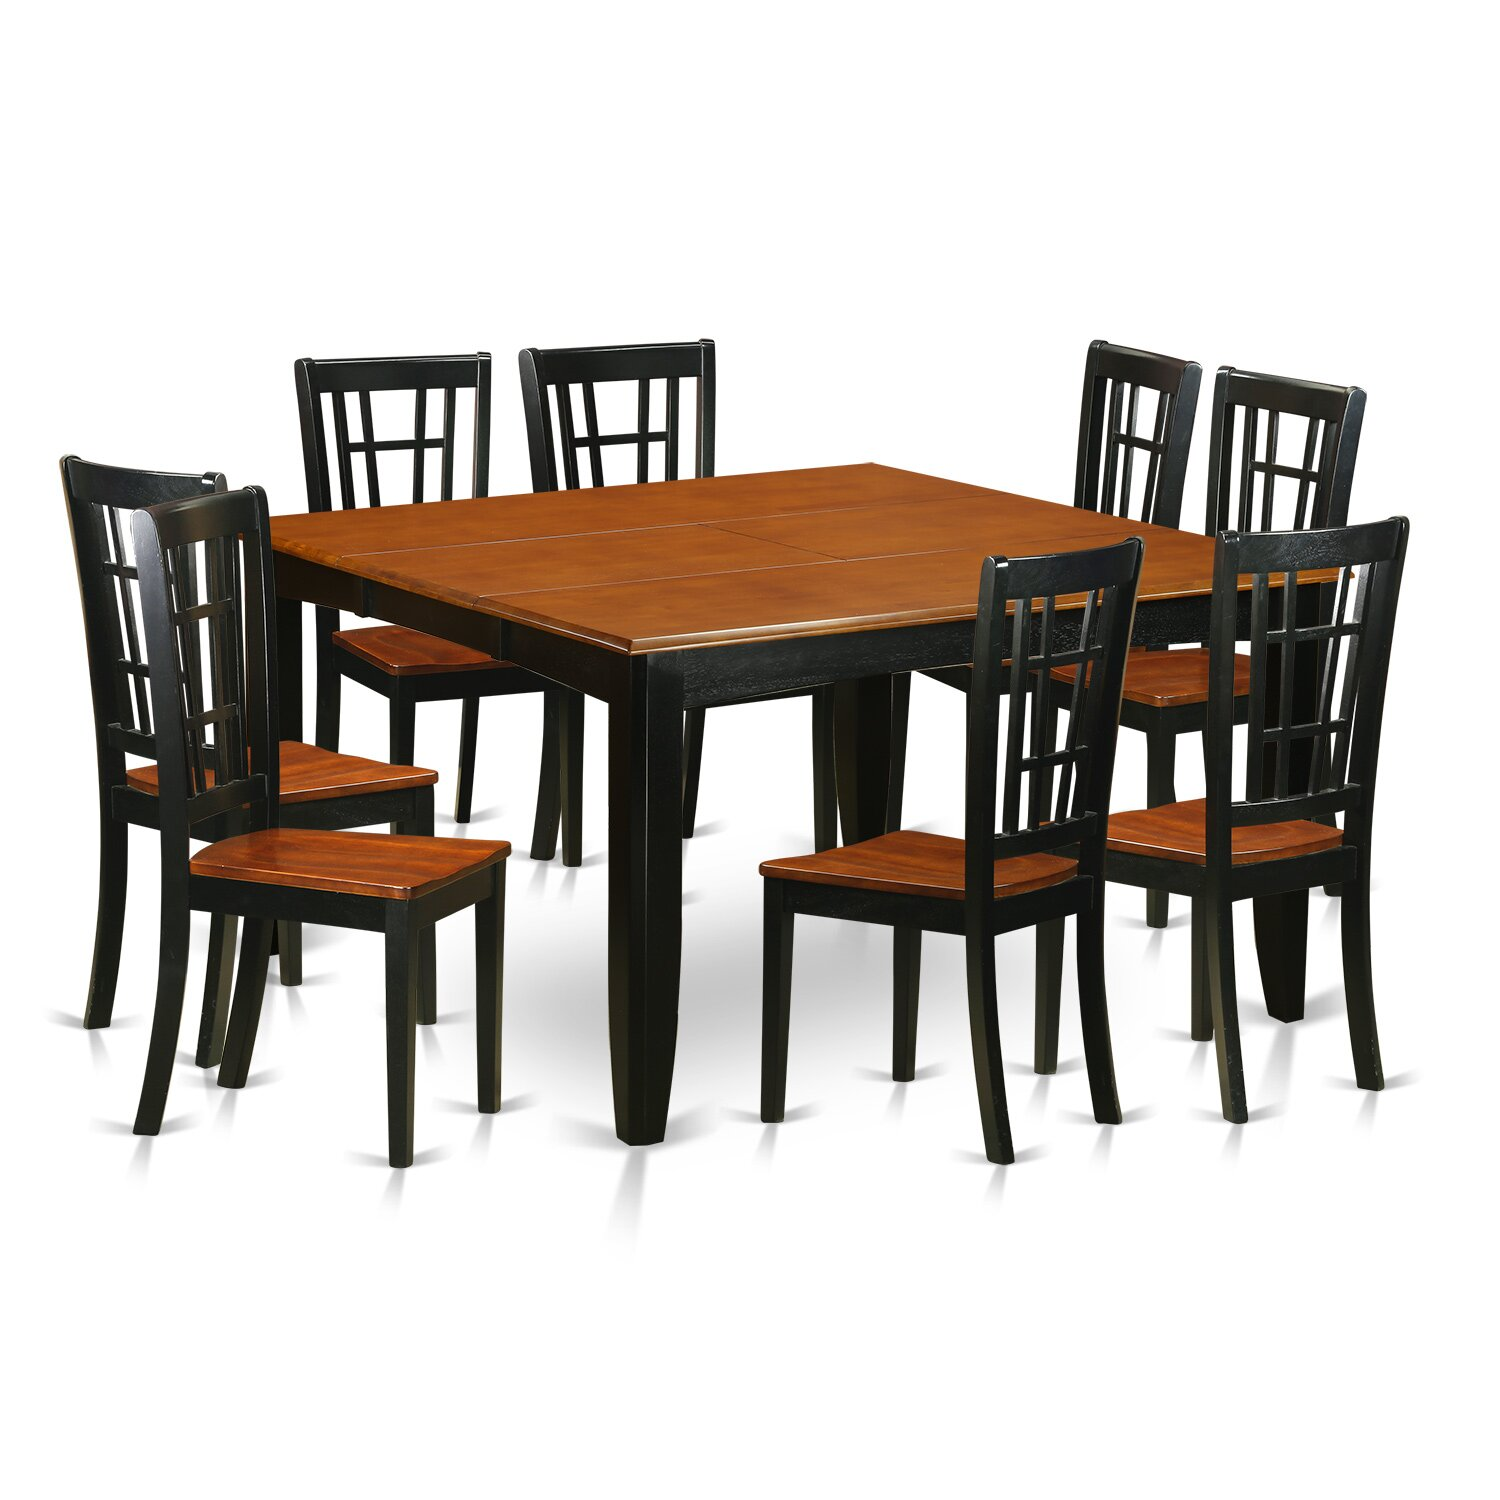 East west parfait 9 piece dining set wayfair for Dining room sets for 8